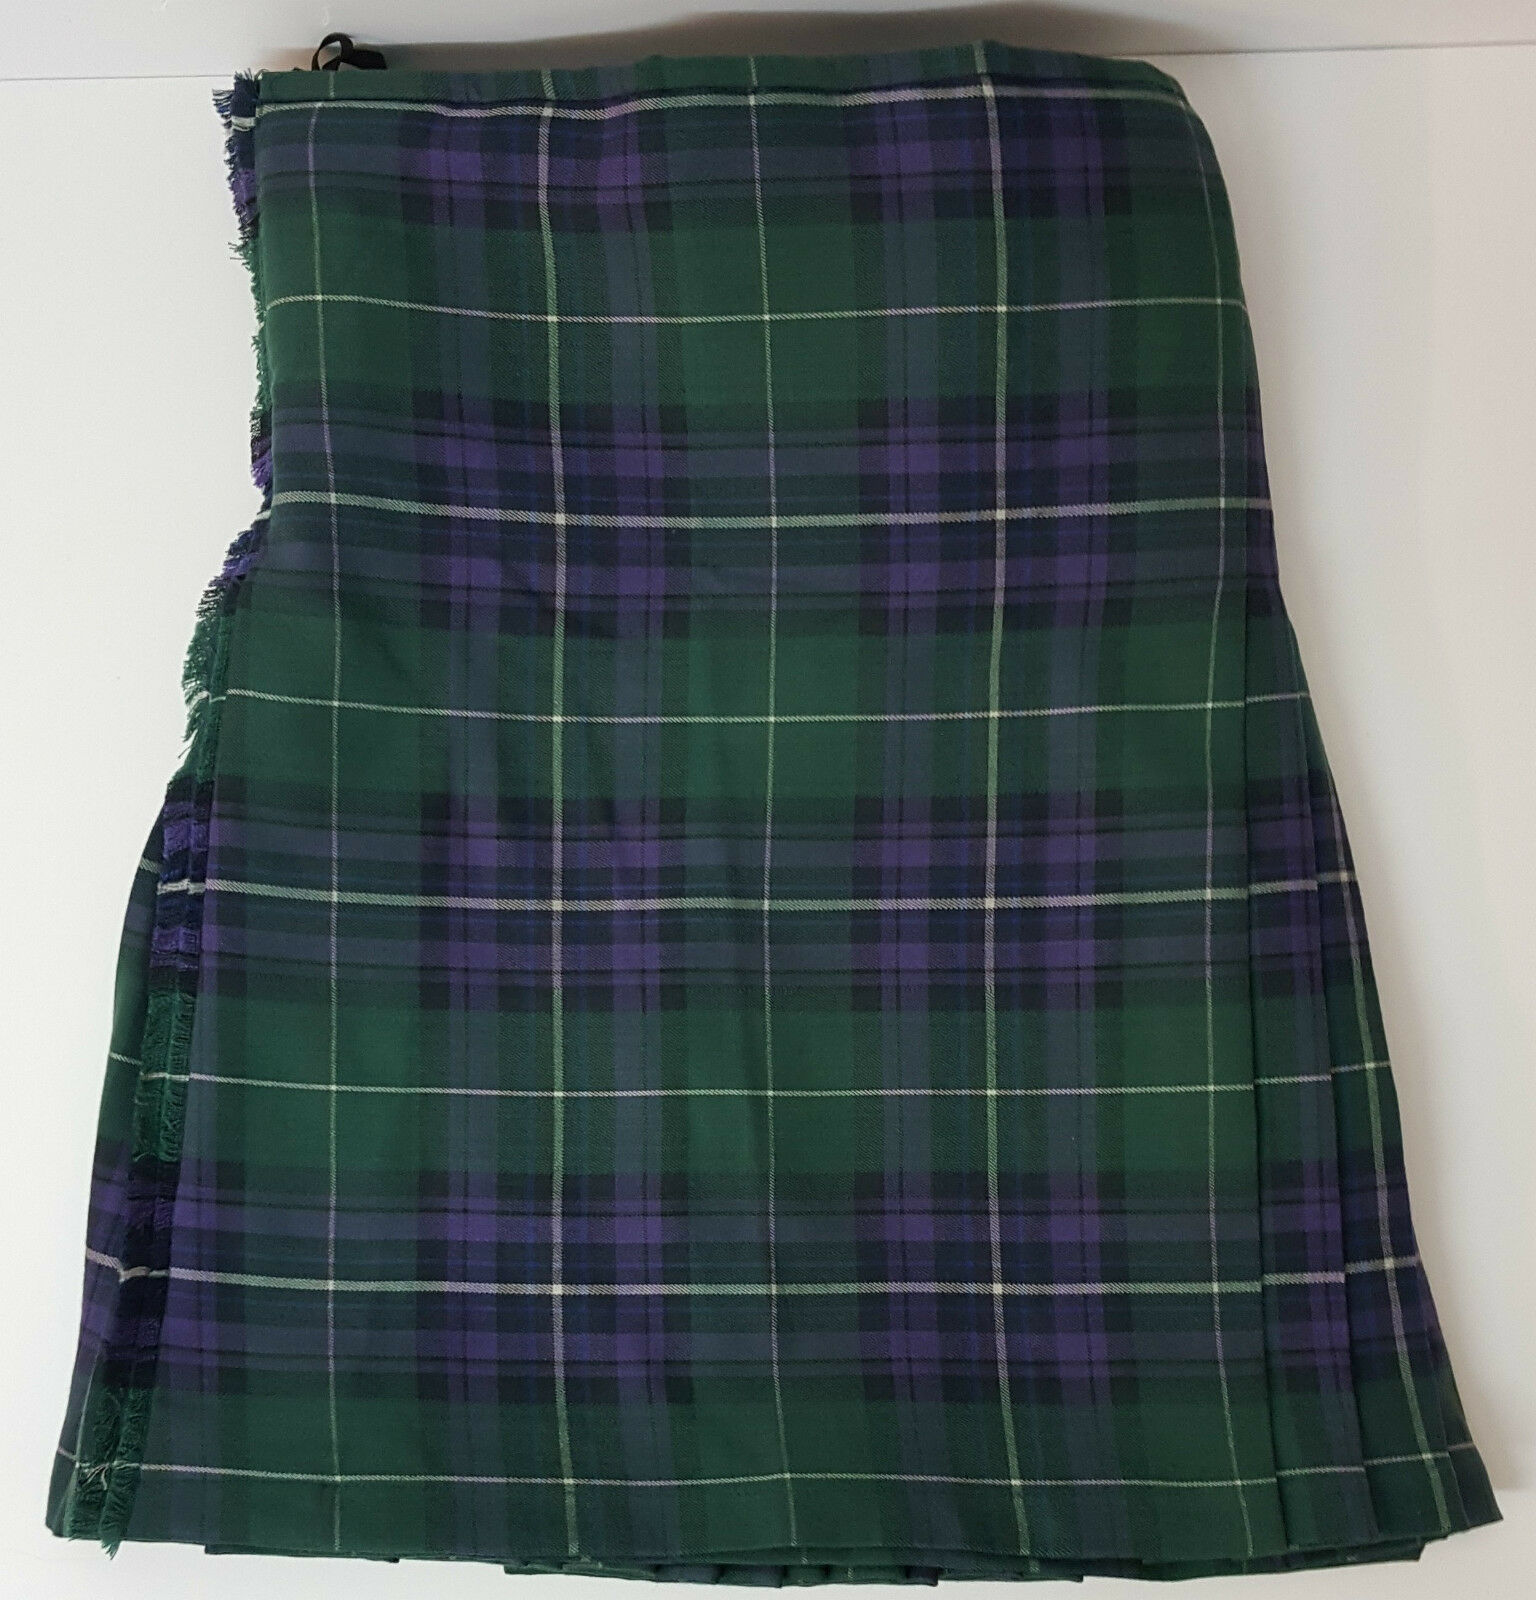 Carnegie Ancient 8YD wool KILT ONLY EX HIRE to clear-size 48,50 left